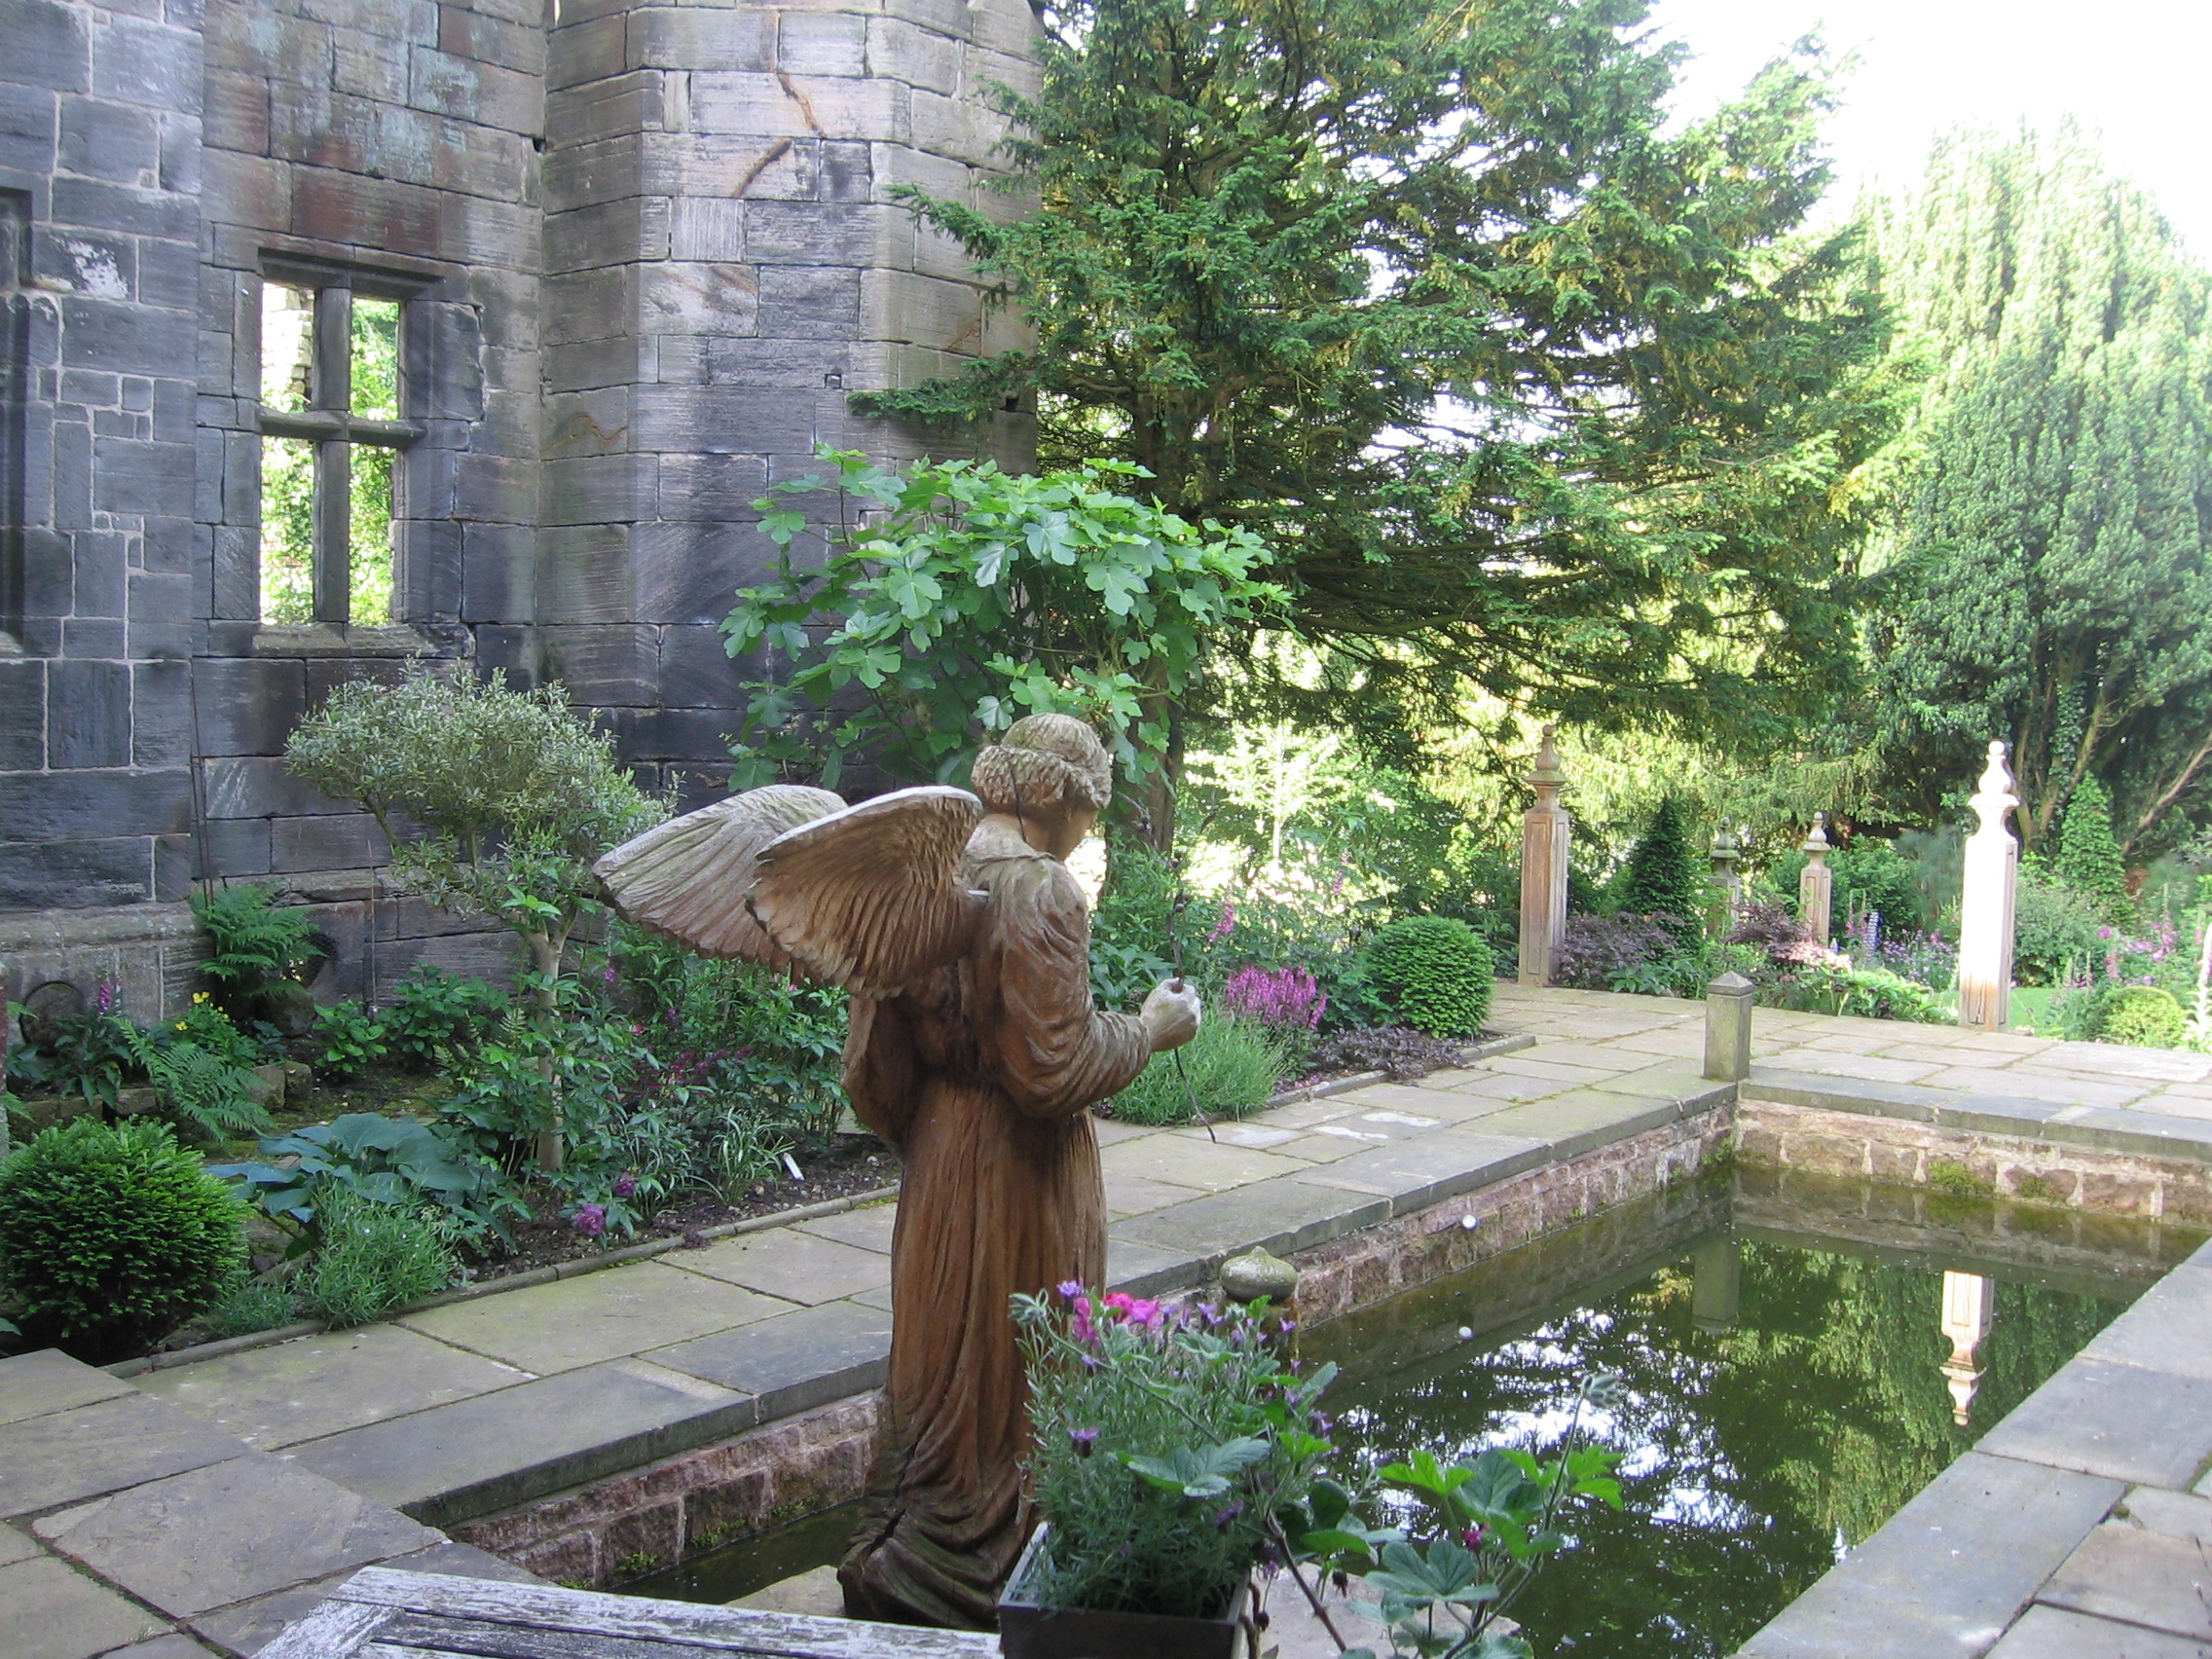 What is the best wood for a sculpture? Photo shows a sculpture of an angel in oak standing next to a small pond. The oak is aging and turning a deeper shade of grey, but has no signs of decay.